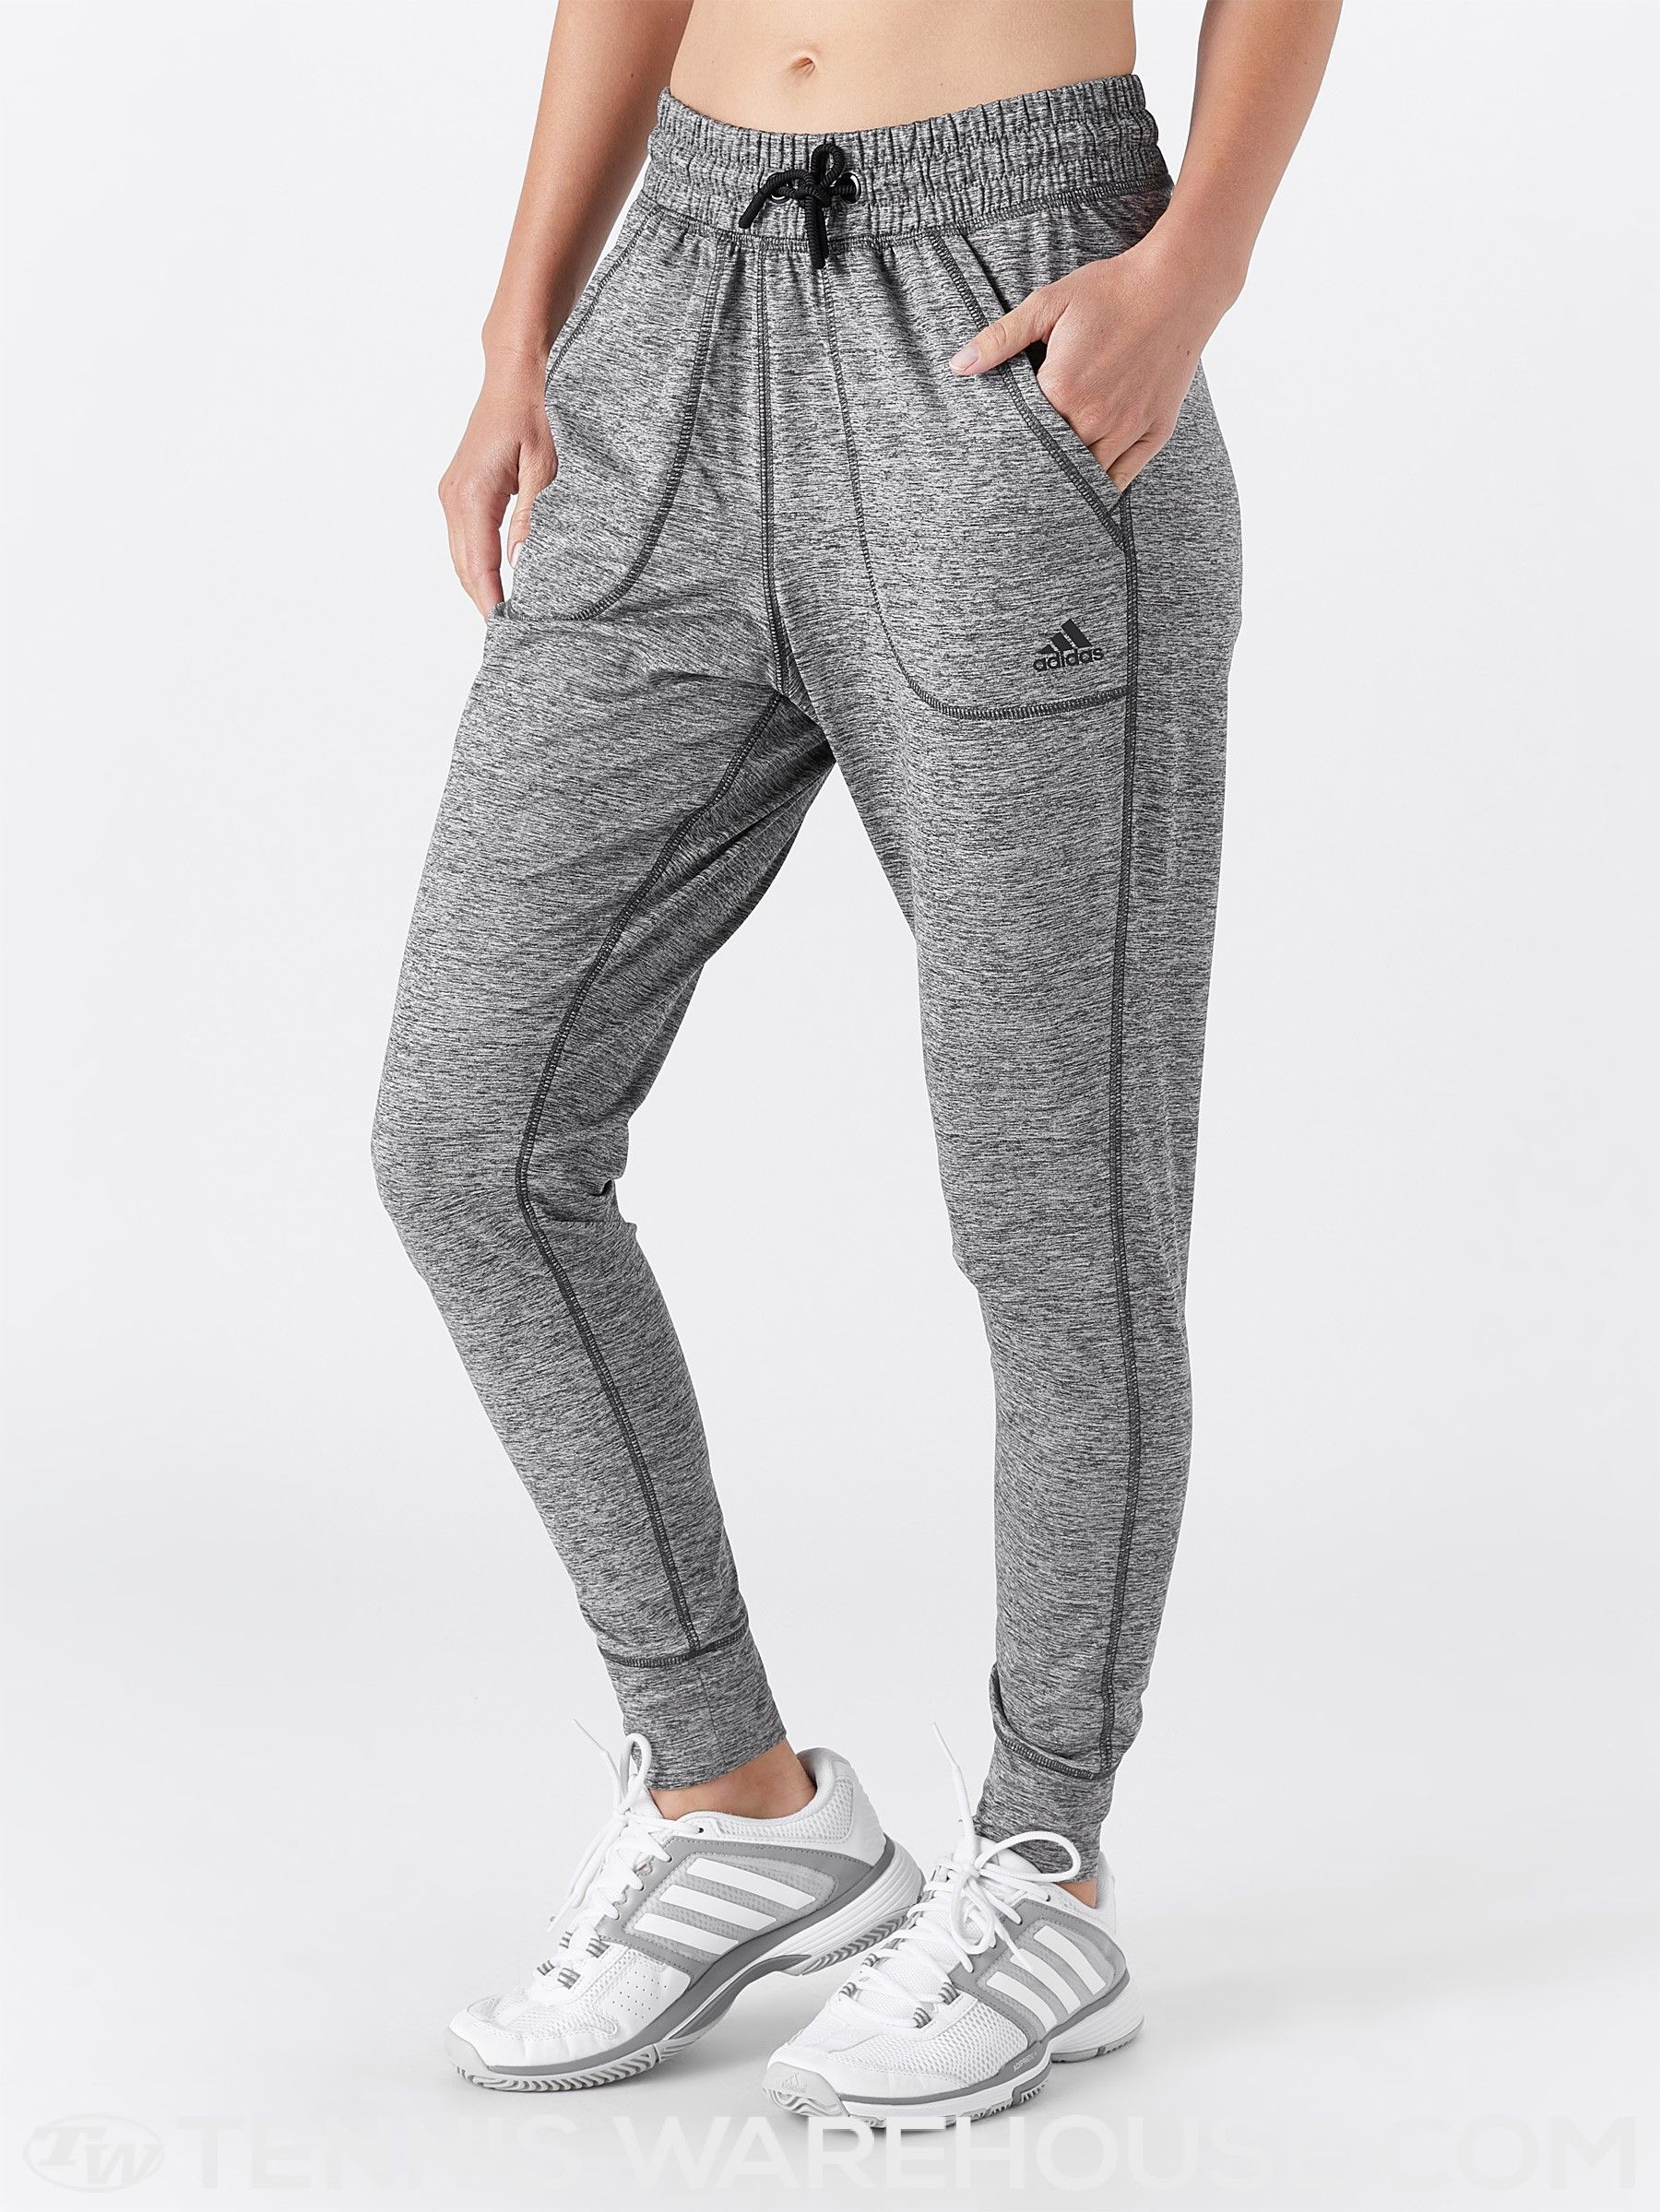 5f5cfacf adidas Women's Spring ID Jogger in 2019 | Women's Tennis Wear ...